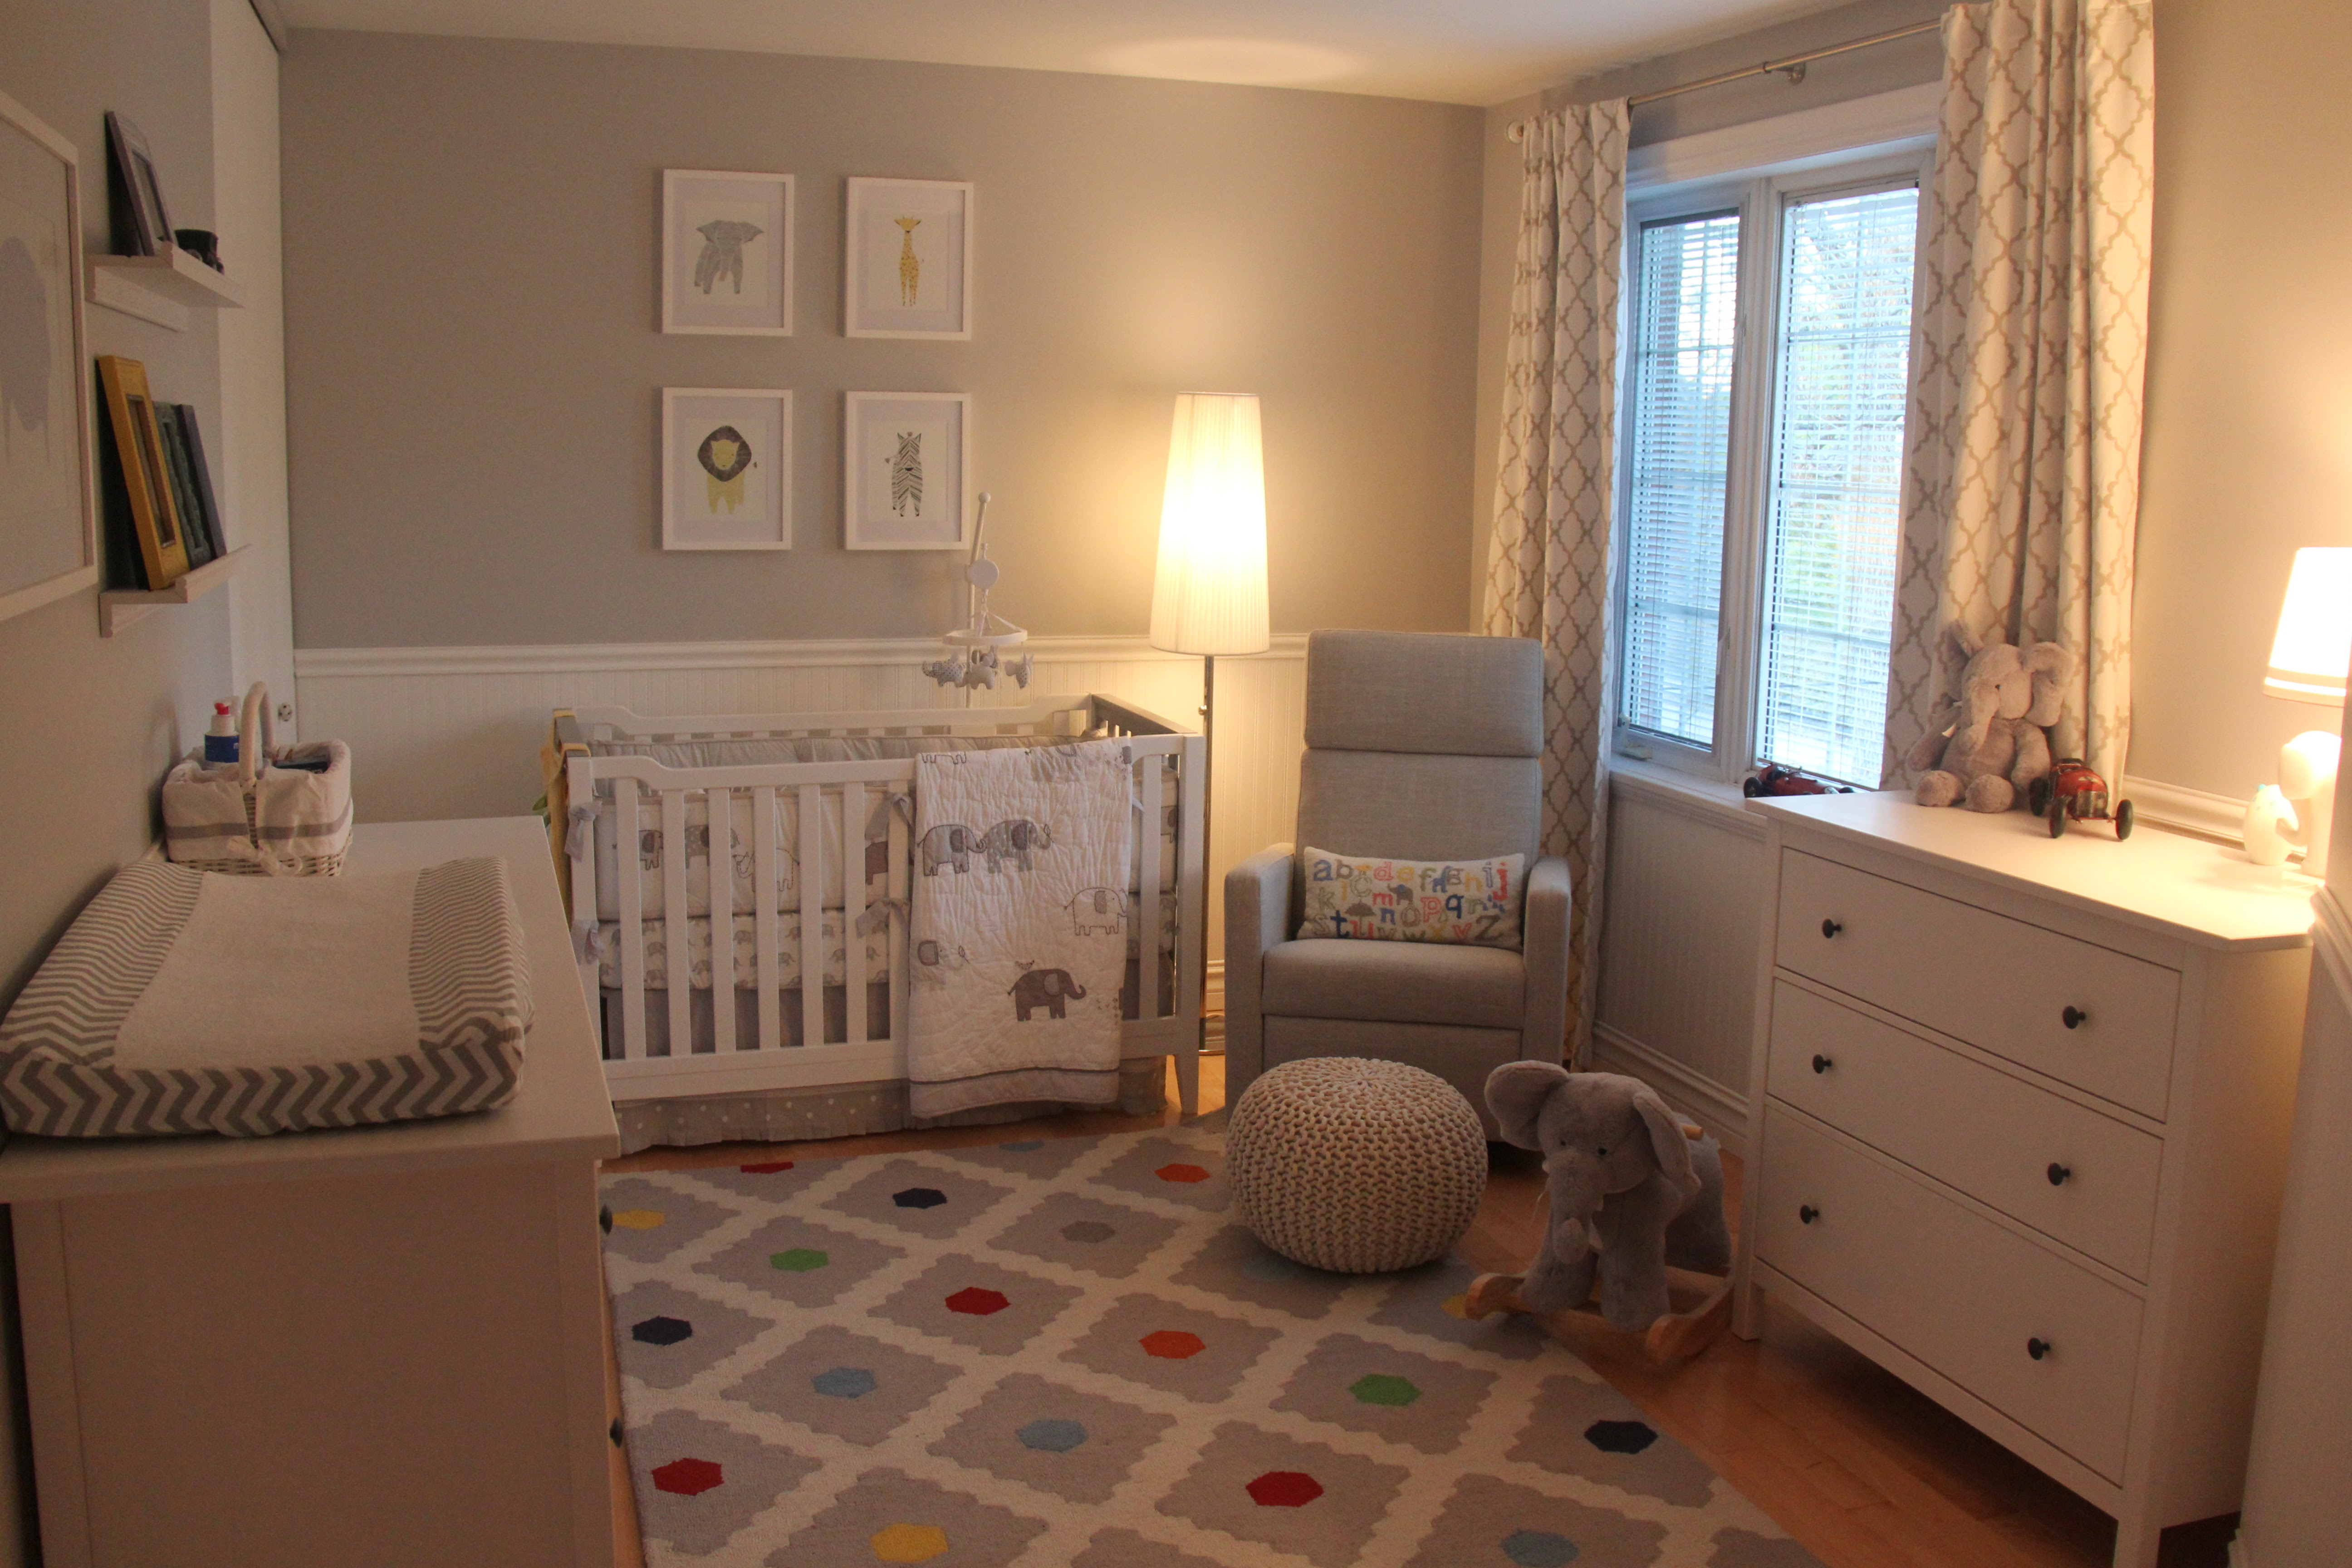 Our Little Baby Boy's Neutral Room - Project Nursery